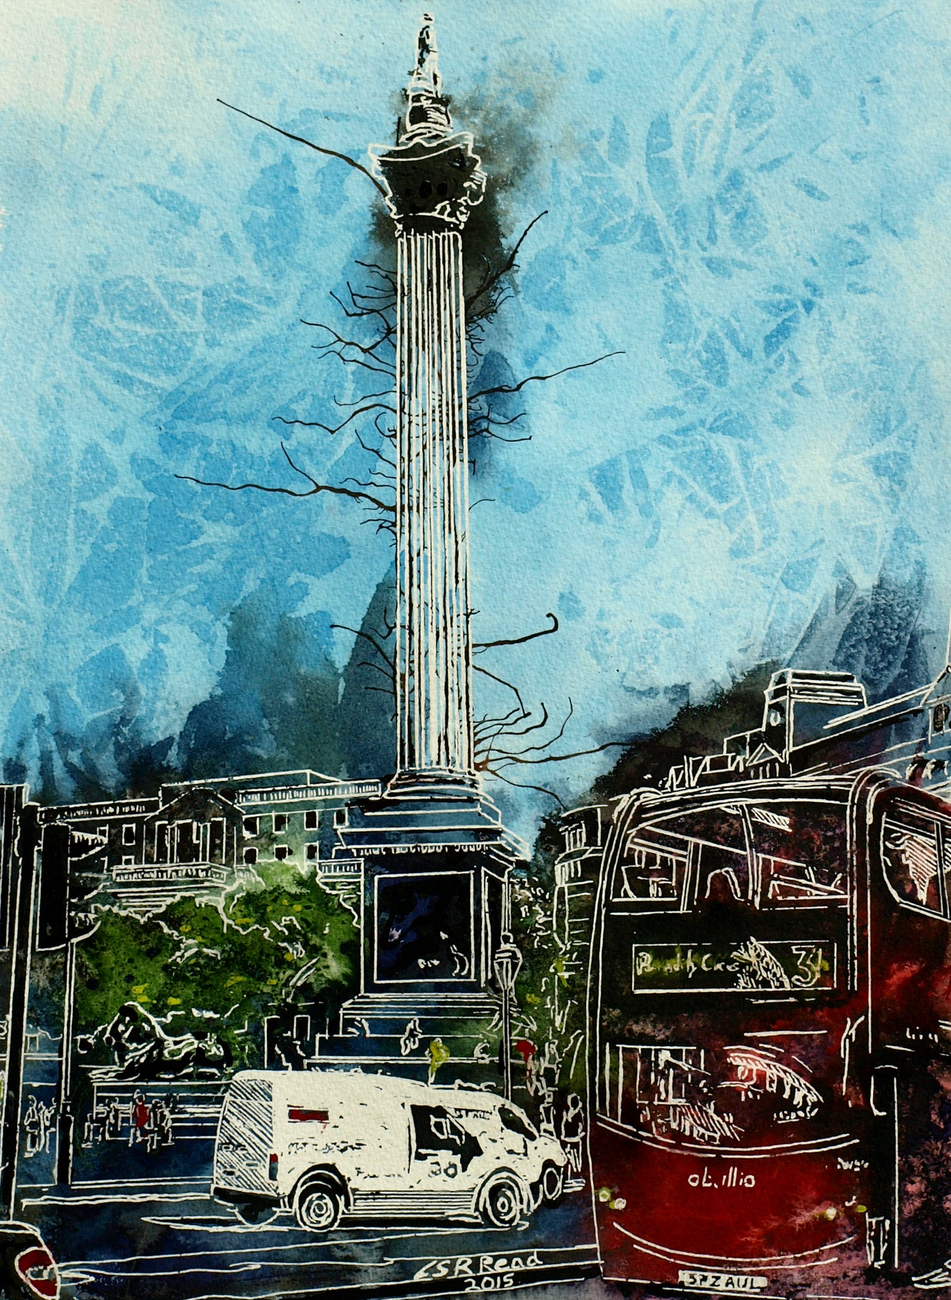 Trafalgar Square - ©2015 - Cathy Read Watercolour and Acrylic  - 38x28 cm